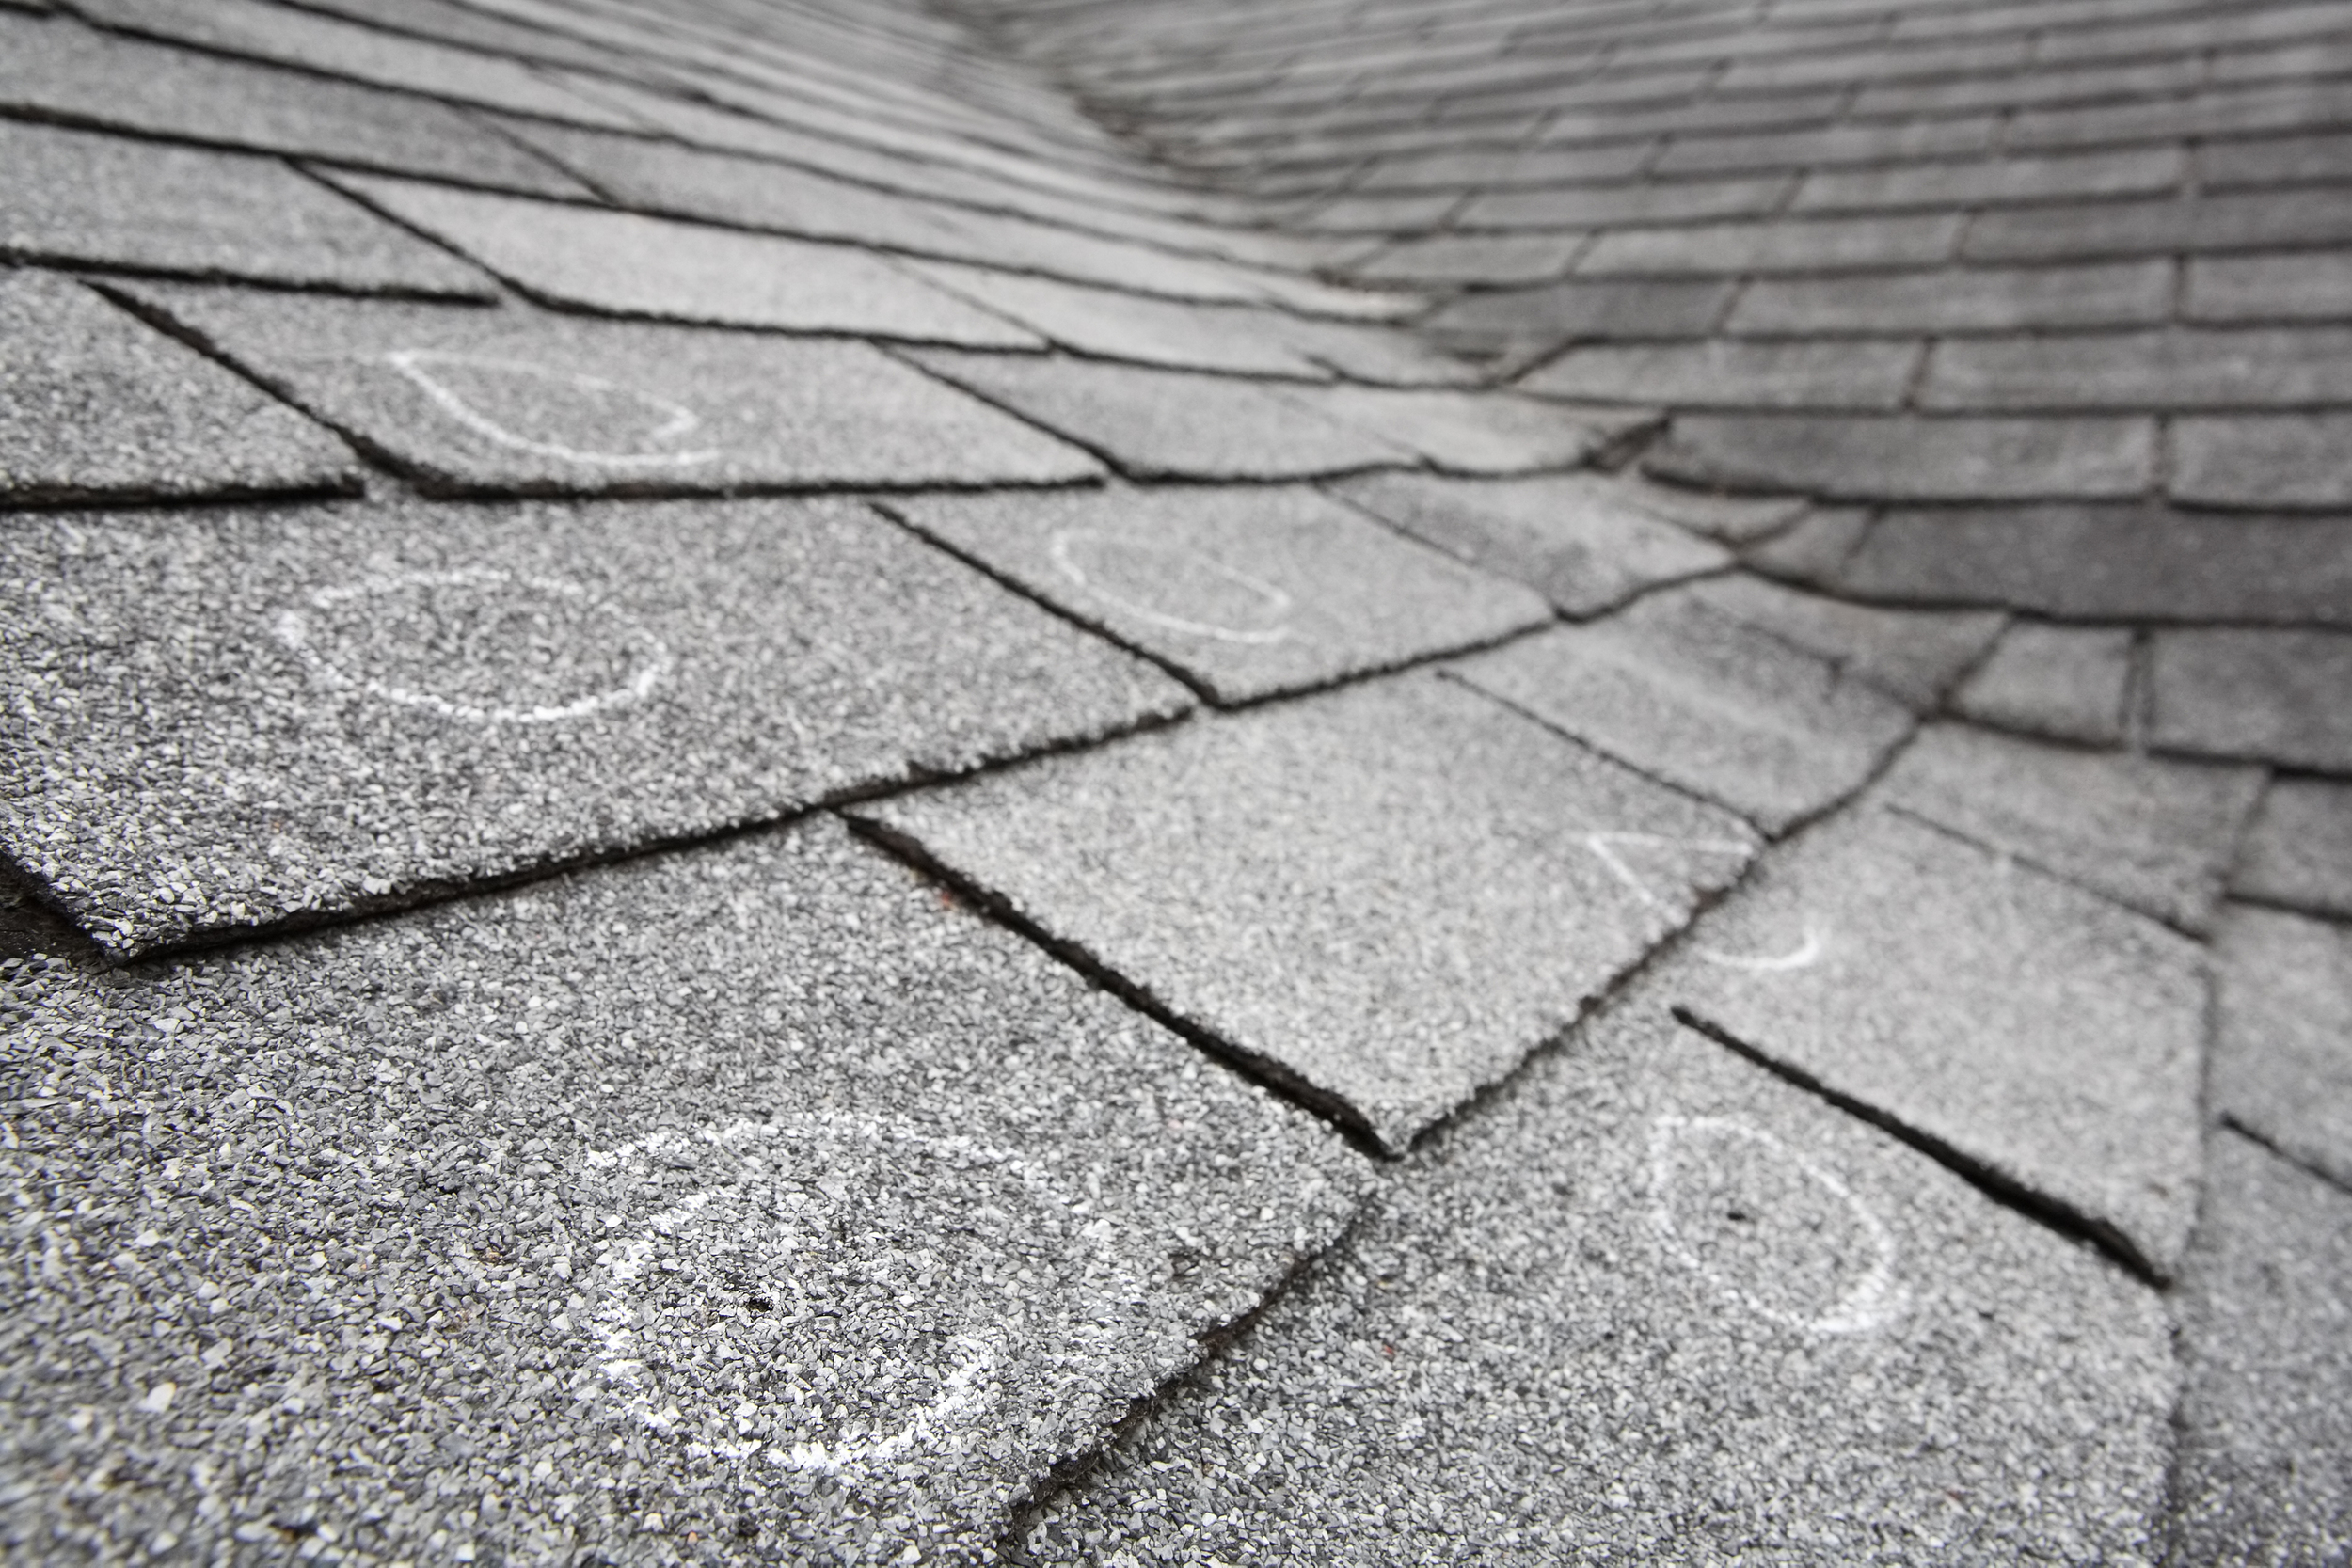 Tip: Hail damage to your roof is extremely hard to identify from the ground. However, damage to other soft metals on your property can provide good collateral.